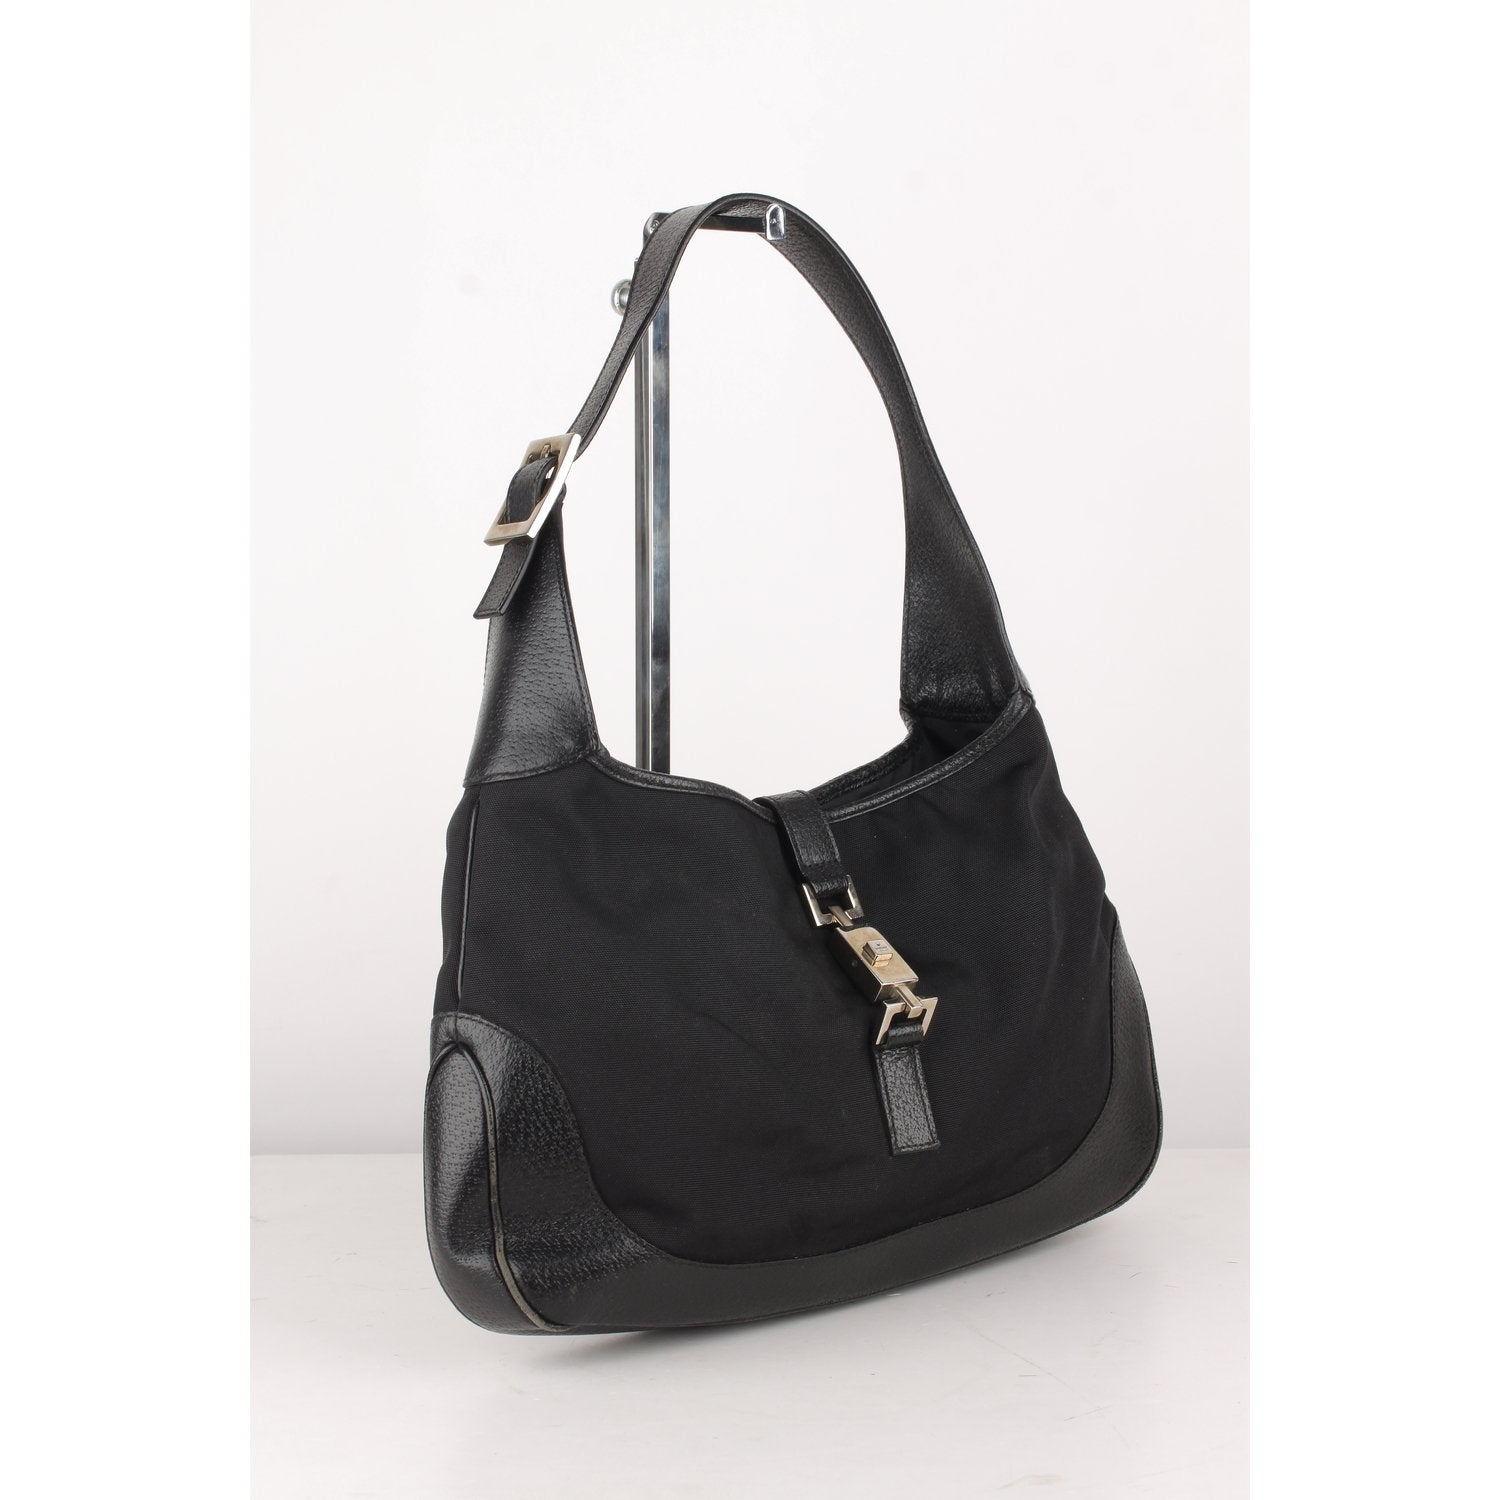 281597b1a19 Enjoy Gucci Hobo Jackie O Bag at OPHERTYCIOCCI – OPHERTY   CIOCCI